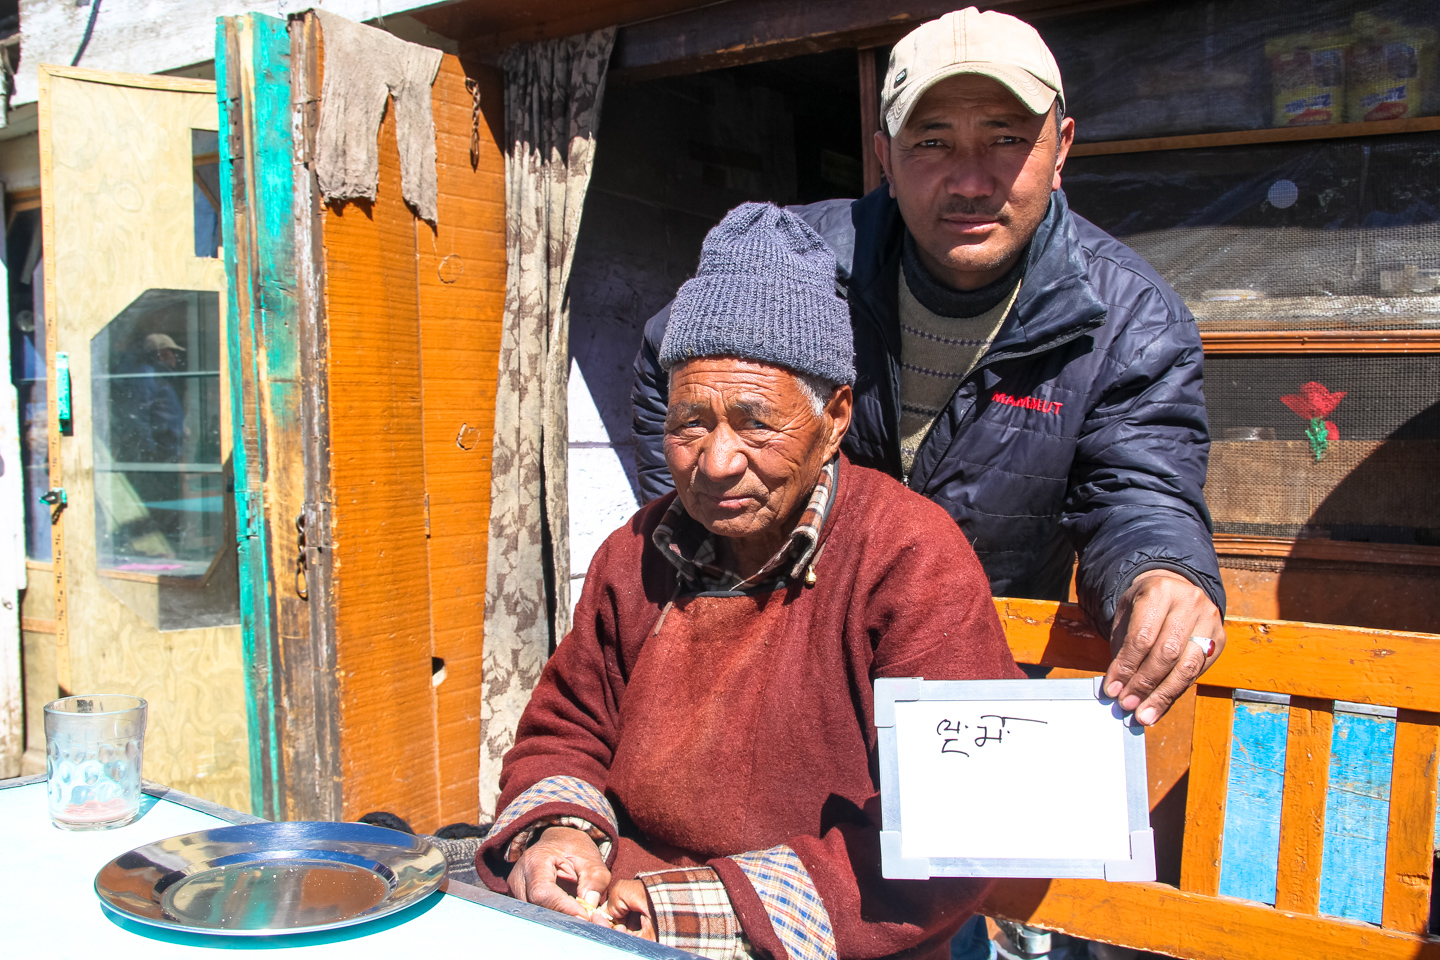 78-year-old Tsering Tashi hails from Sakti, a village 50 kilometers outside of Leh, Ladakh. He starts his mornings with a steaming cup of salty pink tea, or namkeen chai, mixed with tsampa, or barley flour. 'I have no teeth! What to do?' Anwar, the owner of Nindum Tea Stall, explains how chai fits into their lives. 'We work from June to September harvesting vegetables. Then the rest of the year there's nothing to do. Sit under the sun, drink chai. That's all!'